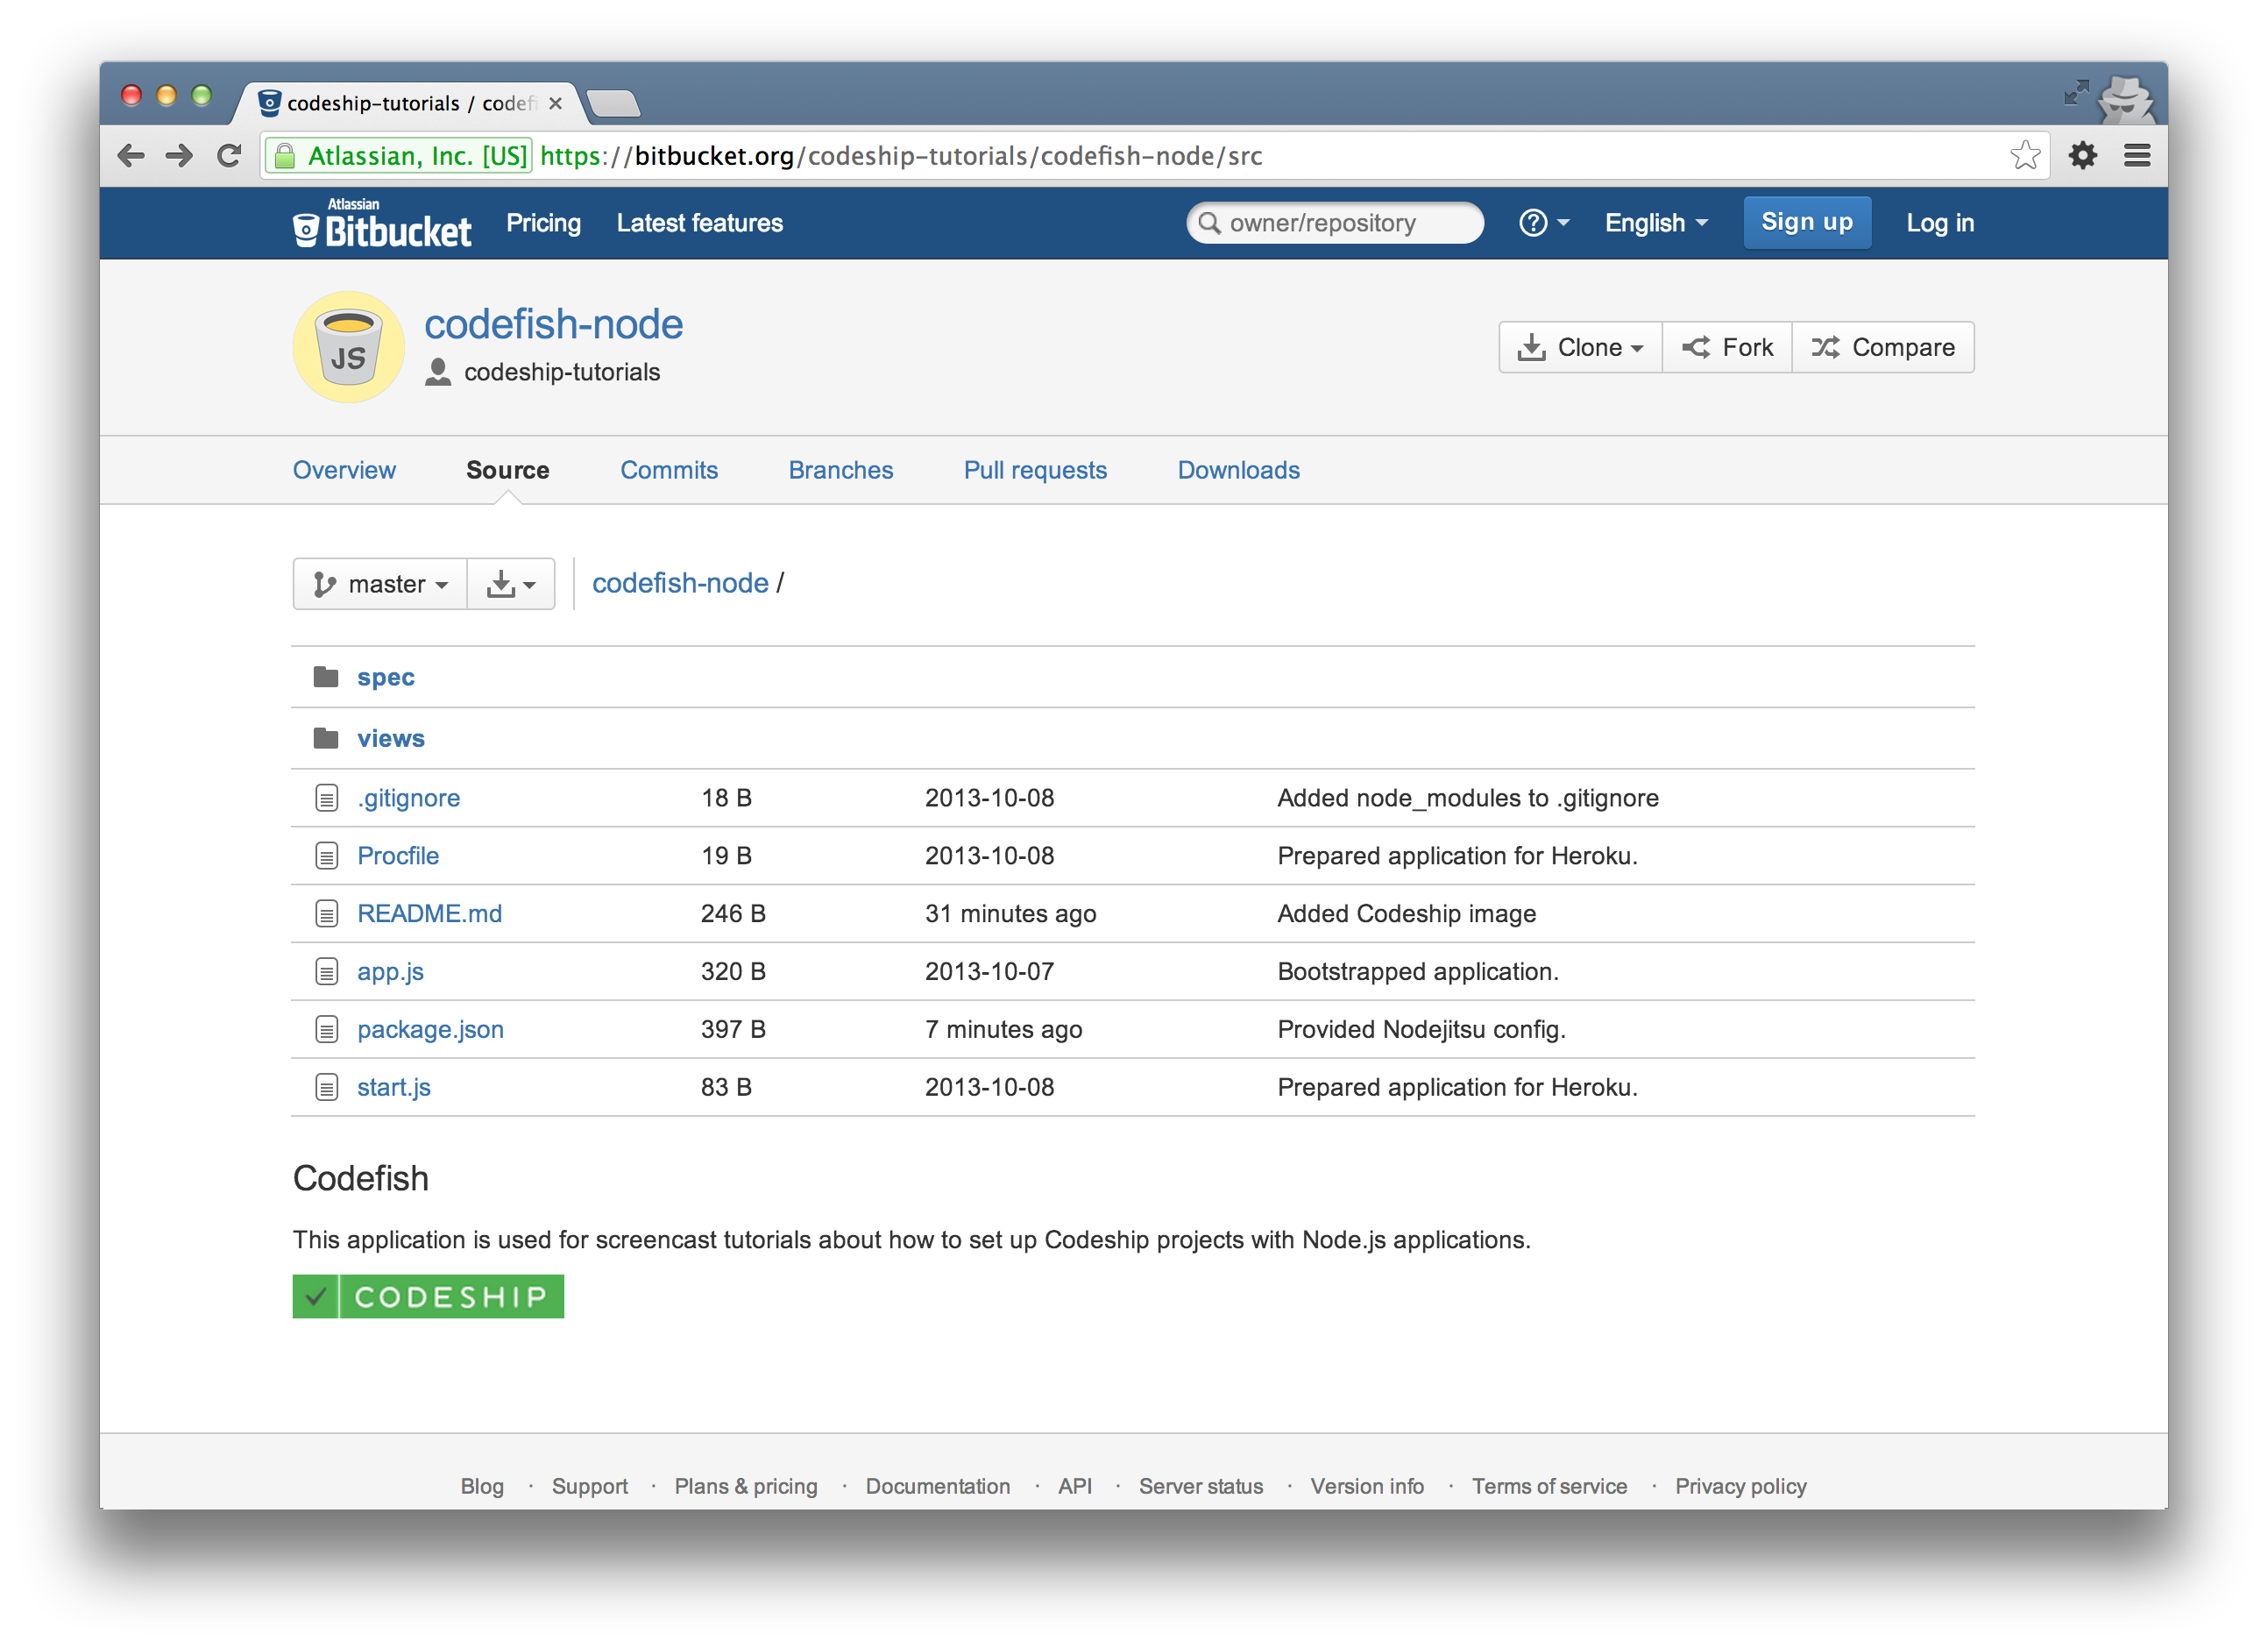 codefish-node on Bitbucket